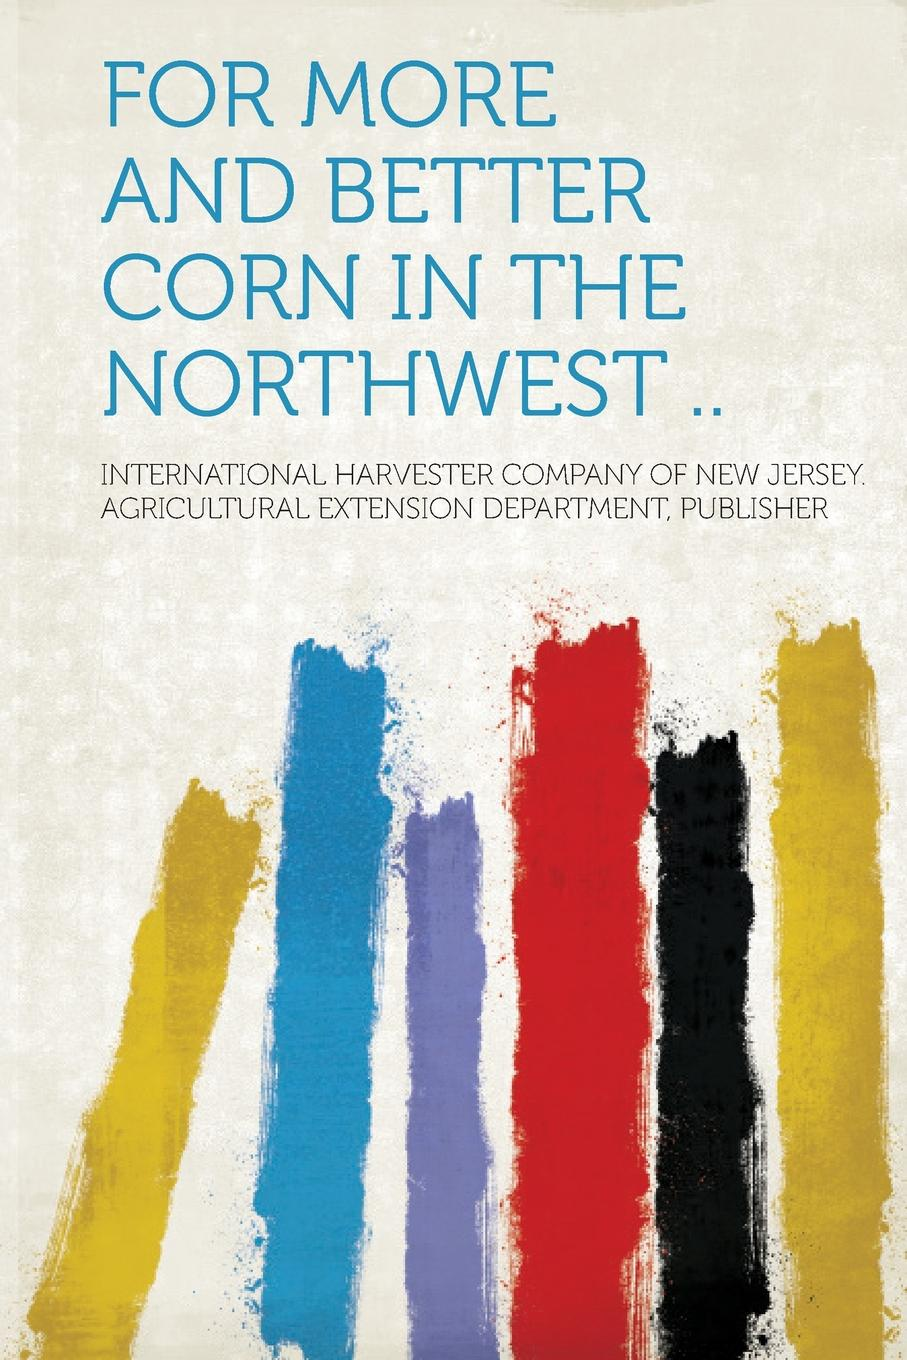 International Harvester Compa Publisher For More and Better Corn in the Northwest ..